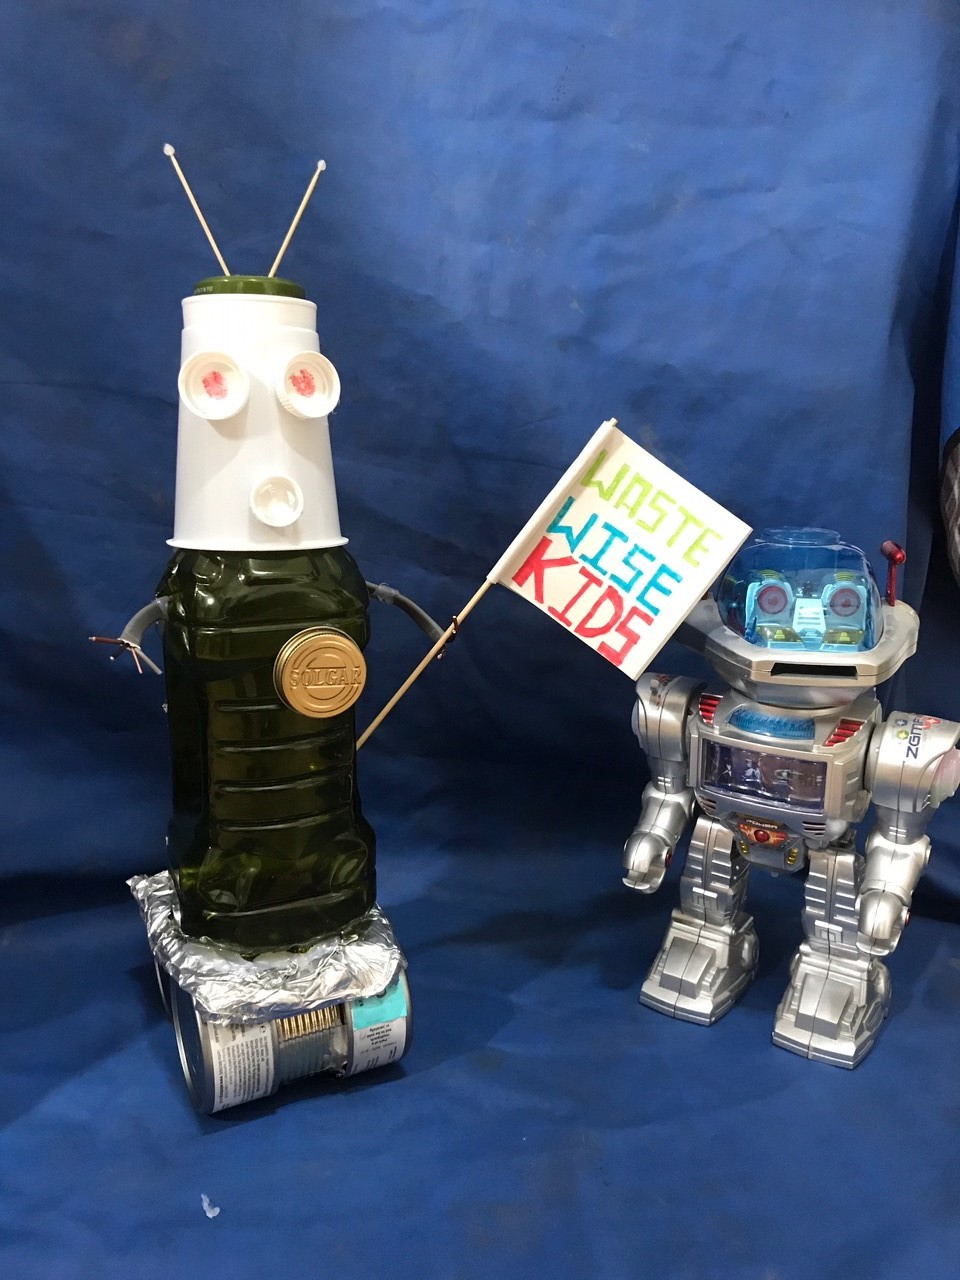 Another Jeff the robot- to keep our WWK Jeff company! Complete with an amazing flag!